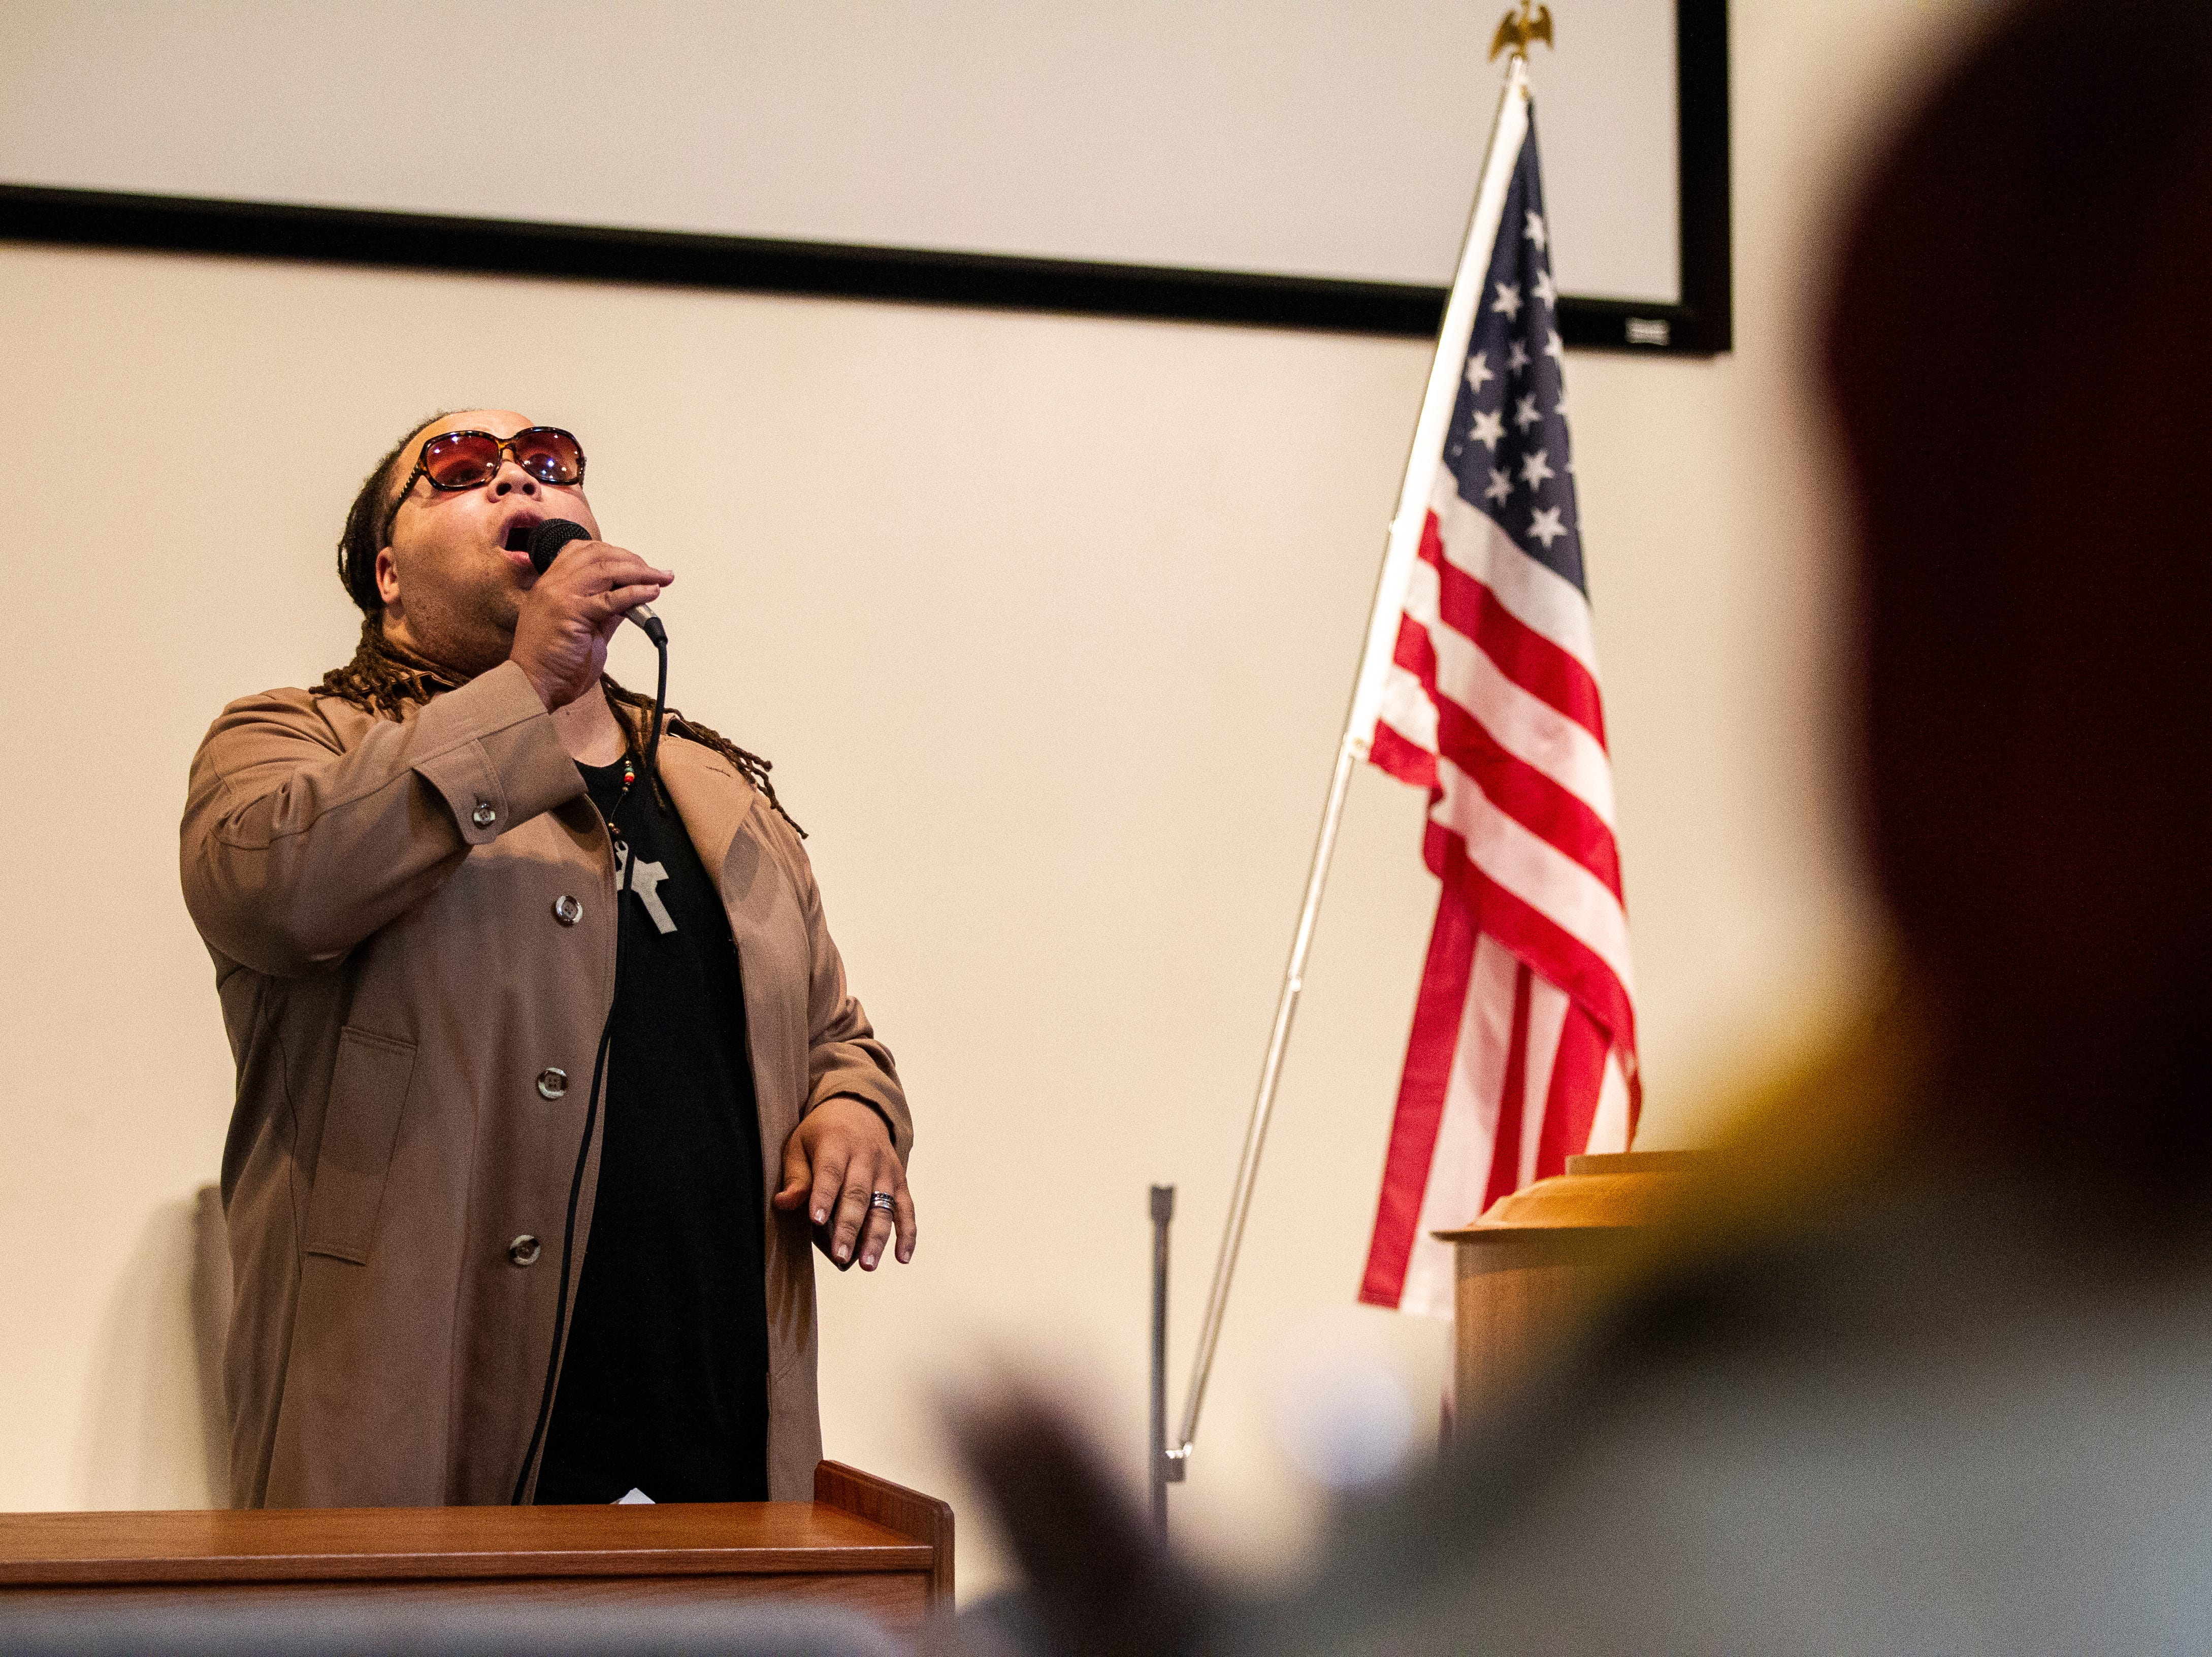 James Teague, Bruce Teague's younger brother, performs a song before a swearing in ceremony for Iowa City councilor Bruce Teague on Saturday, Oct. 13, 2018, at the Church of Nazarene on Wade Street in Iowa City.